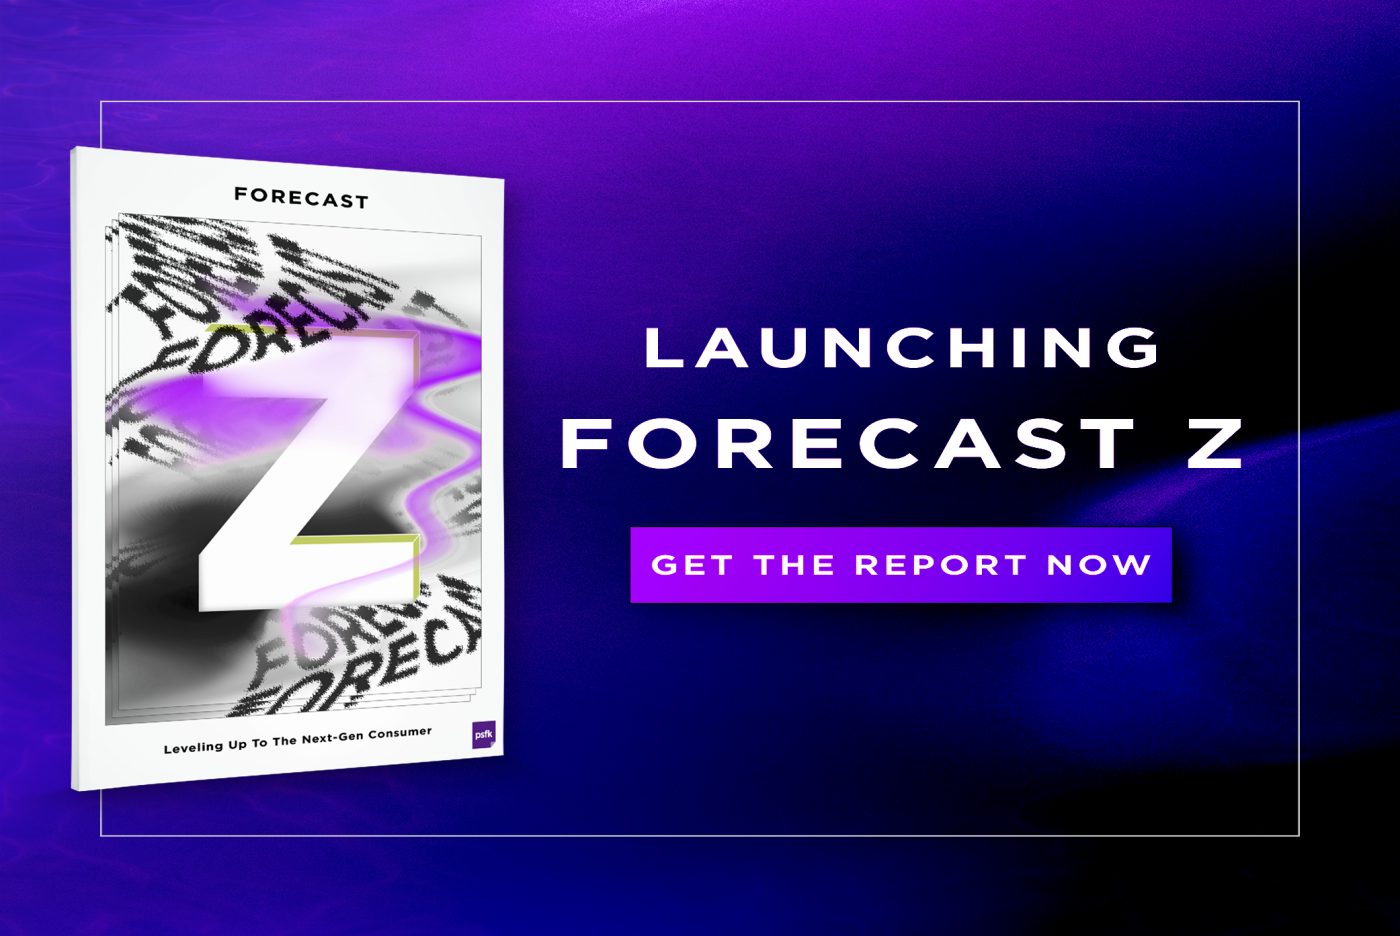 PSFK Launches The Forecast Z Report